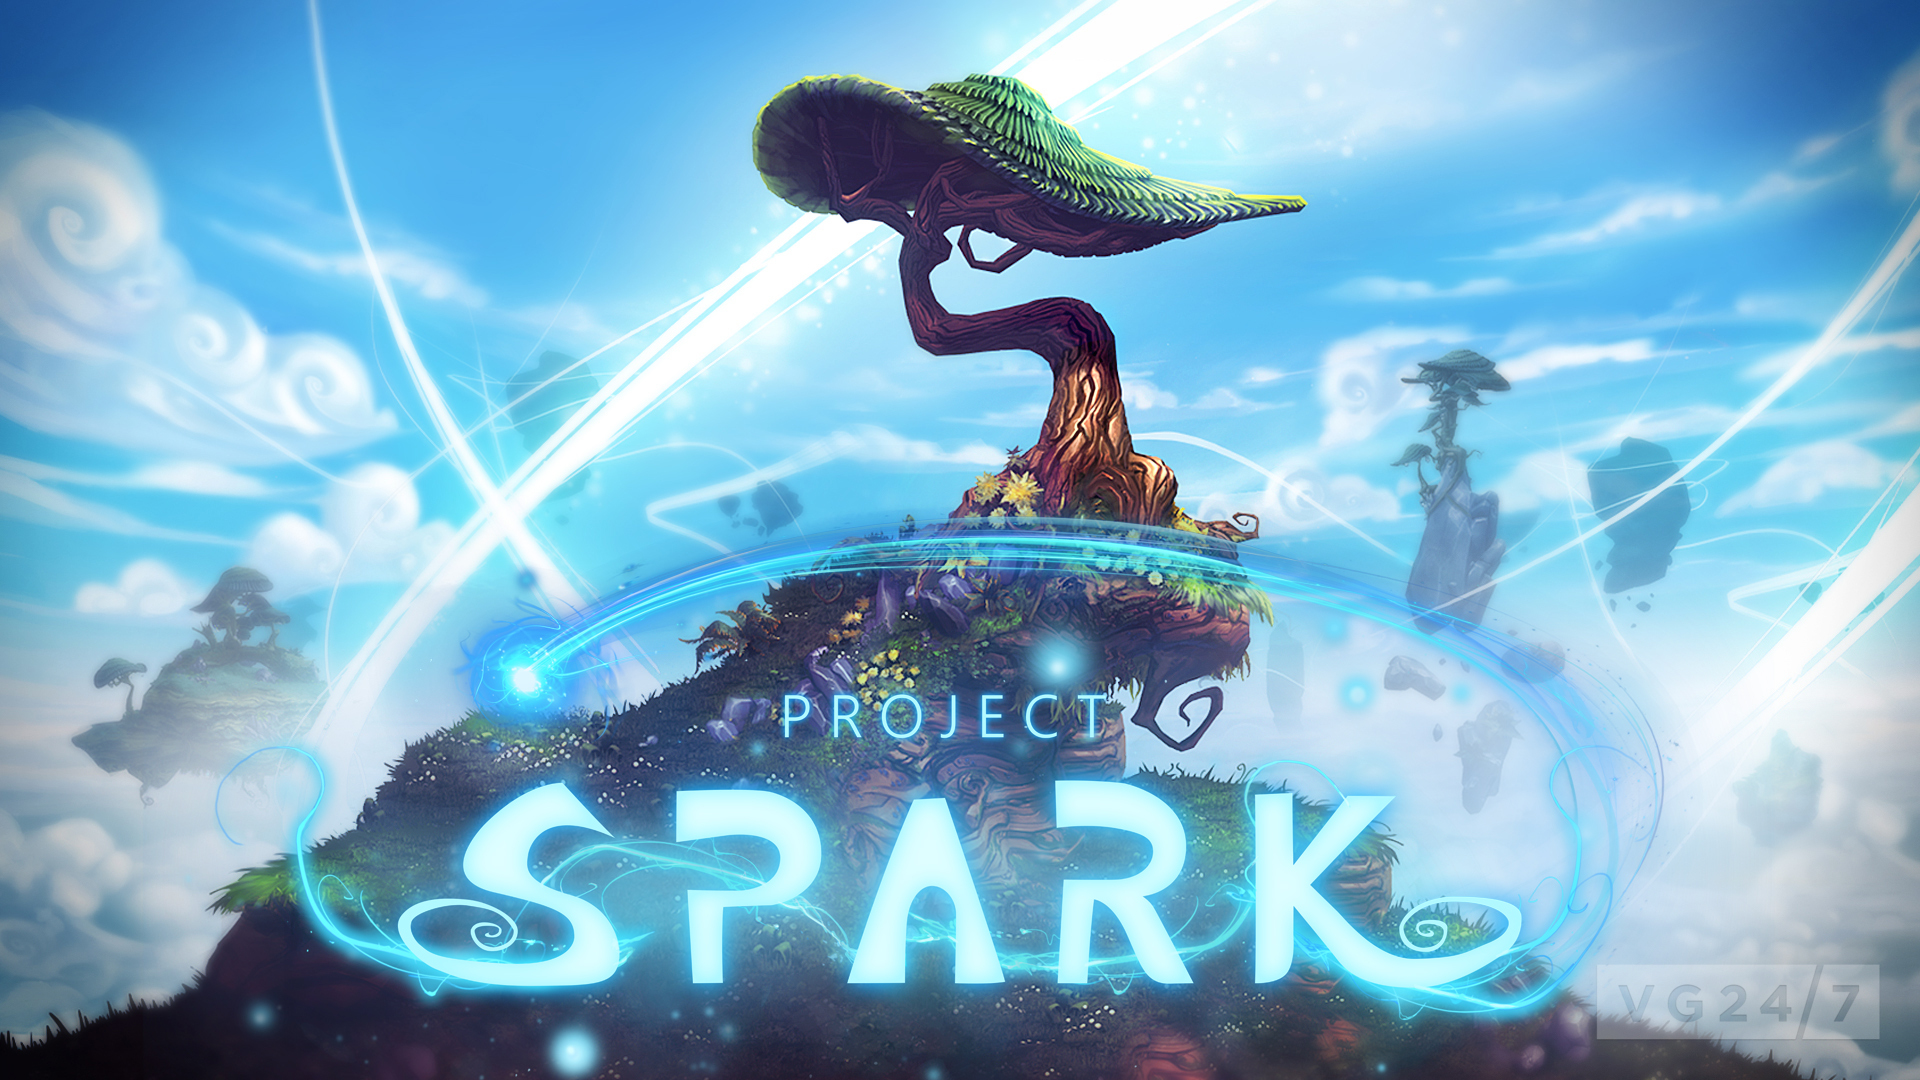 Project Spark Pictures